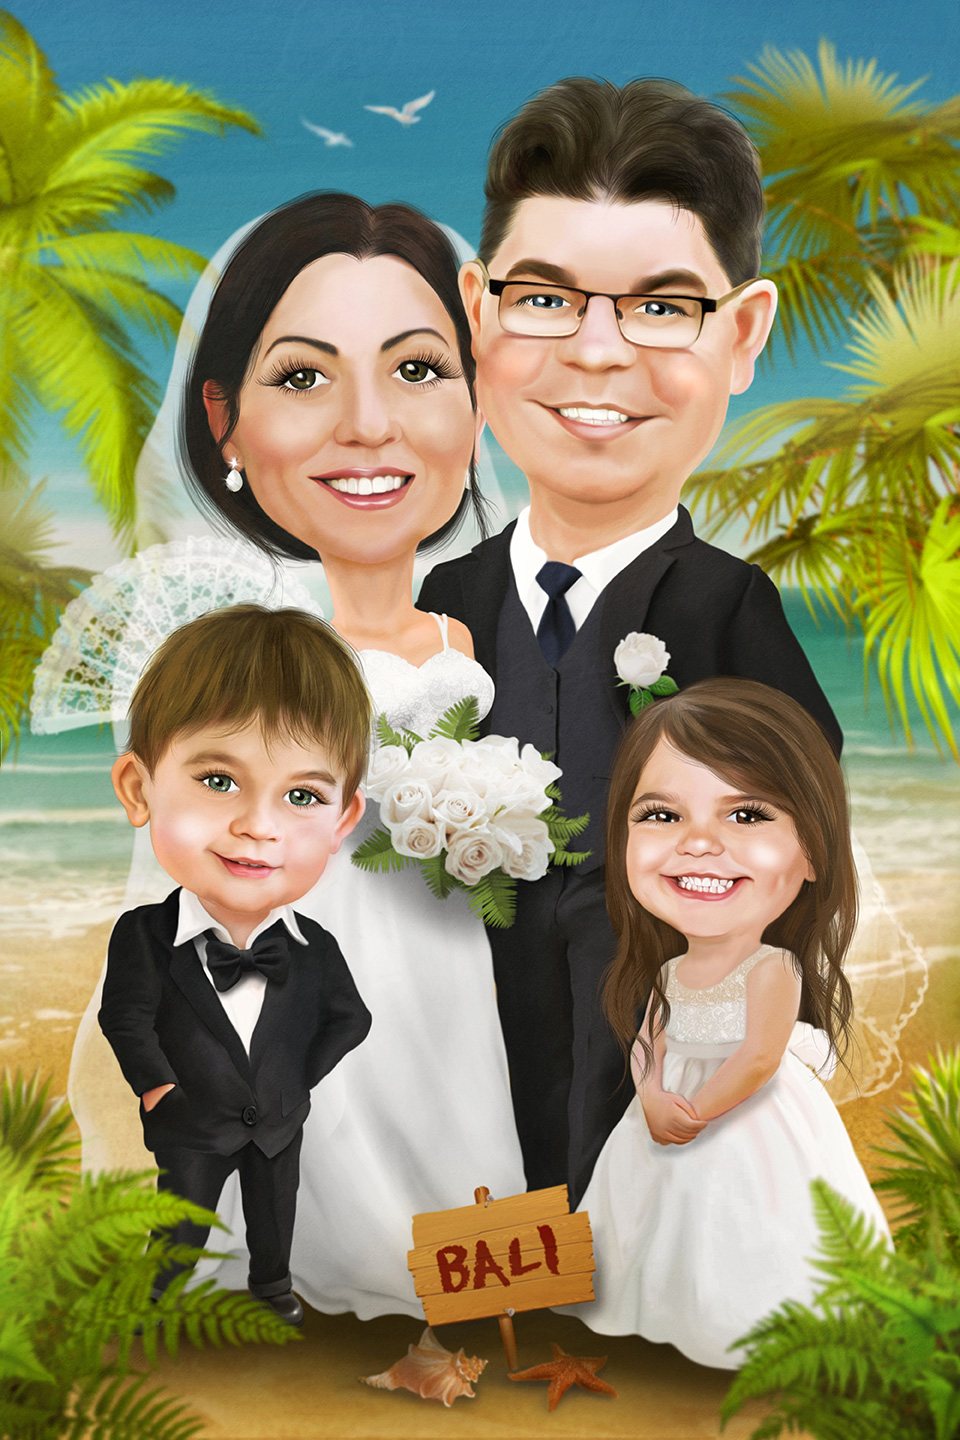 Wedding-caricature-1.jpg